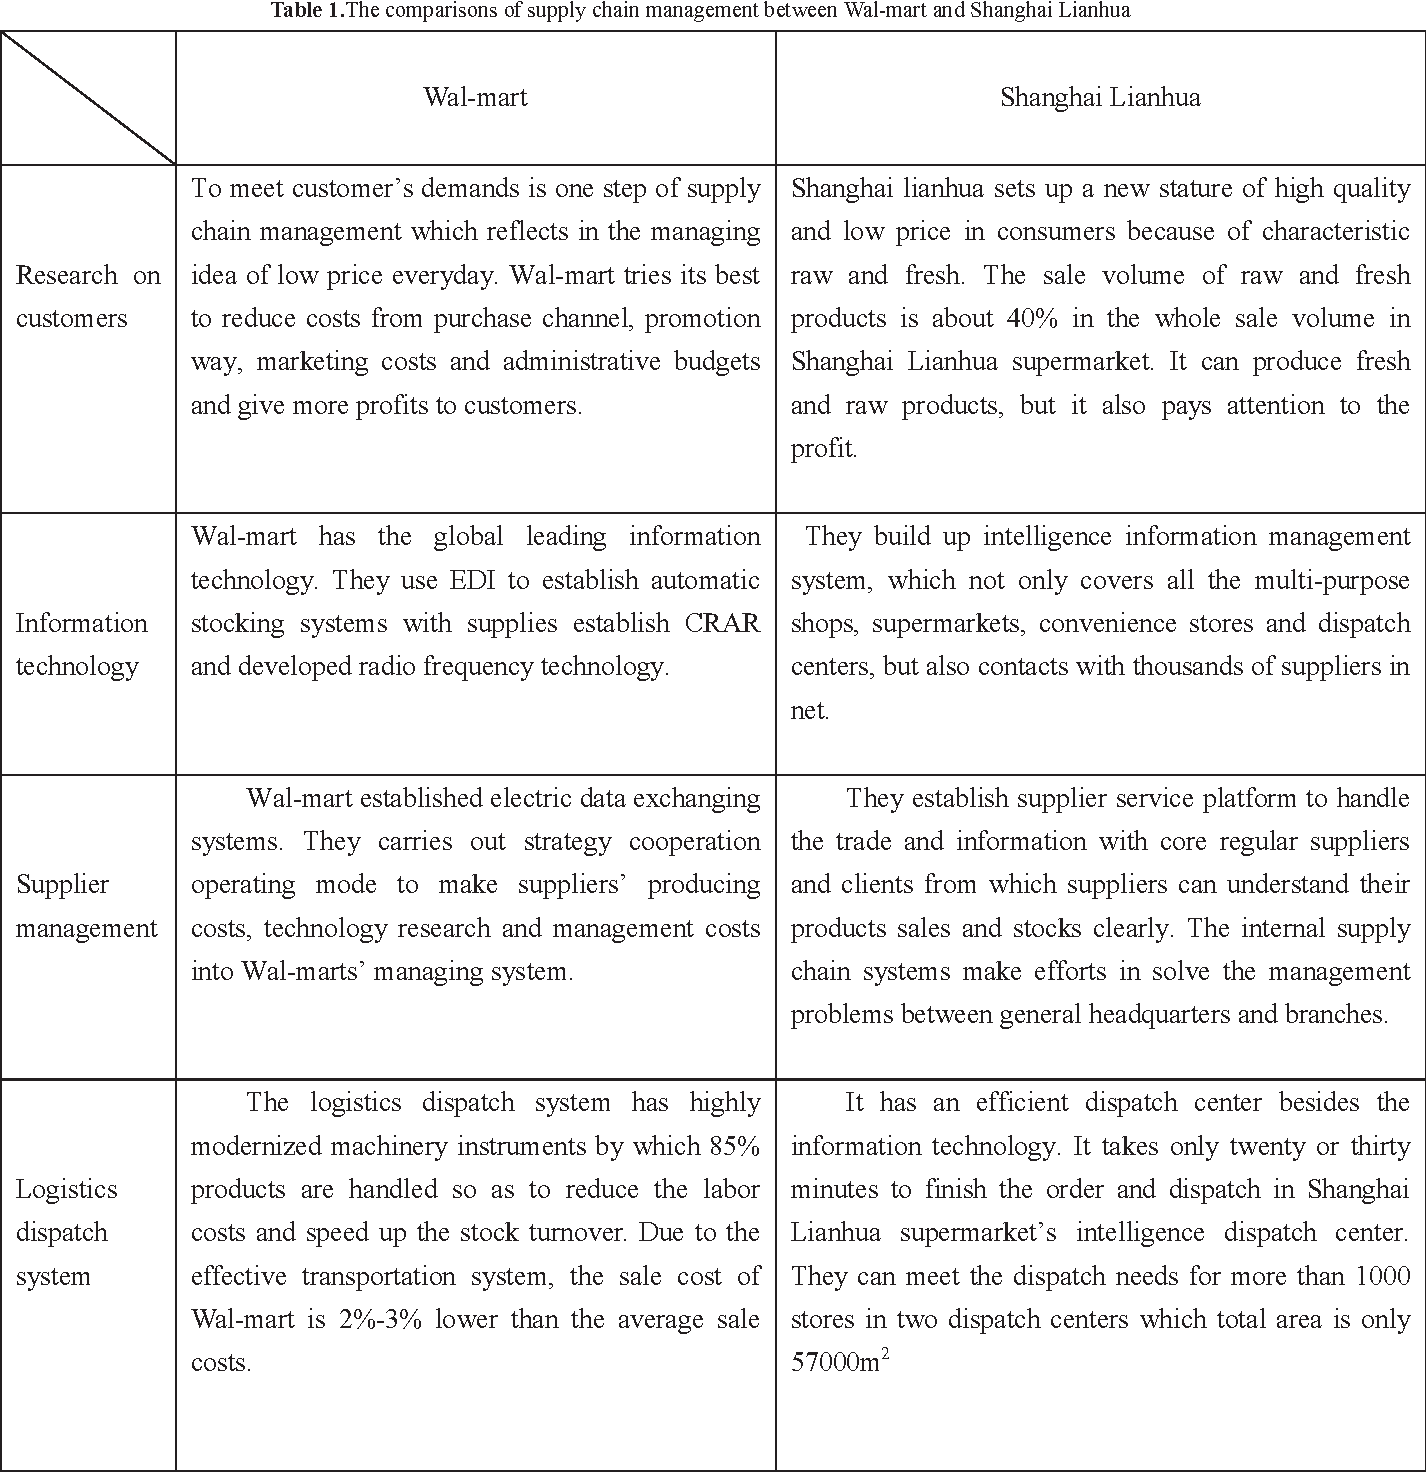 Table 1.The comparisons of supply chain management between Wal-mart and Shanghai Lianhua